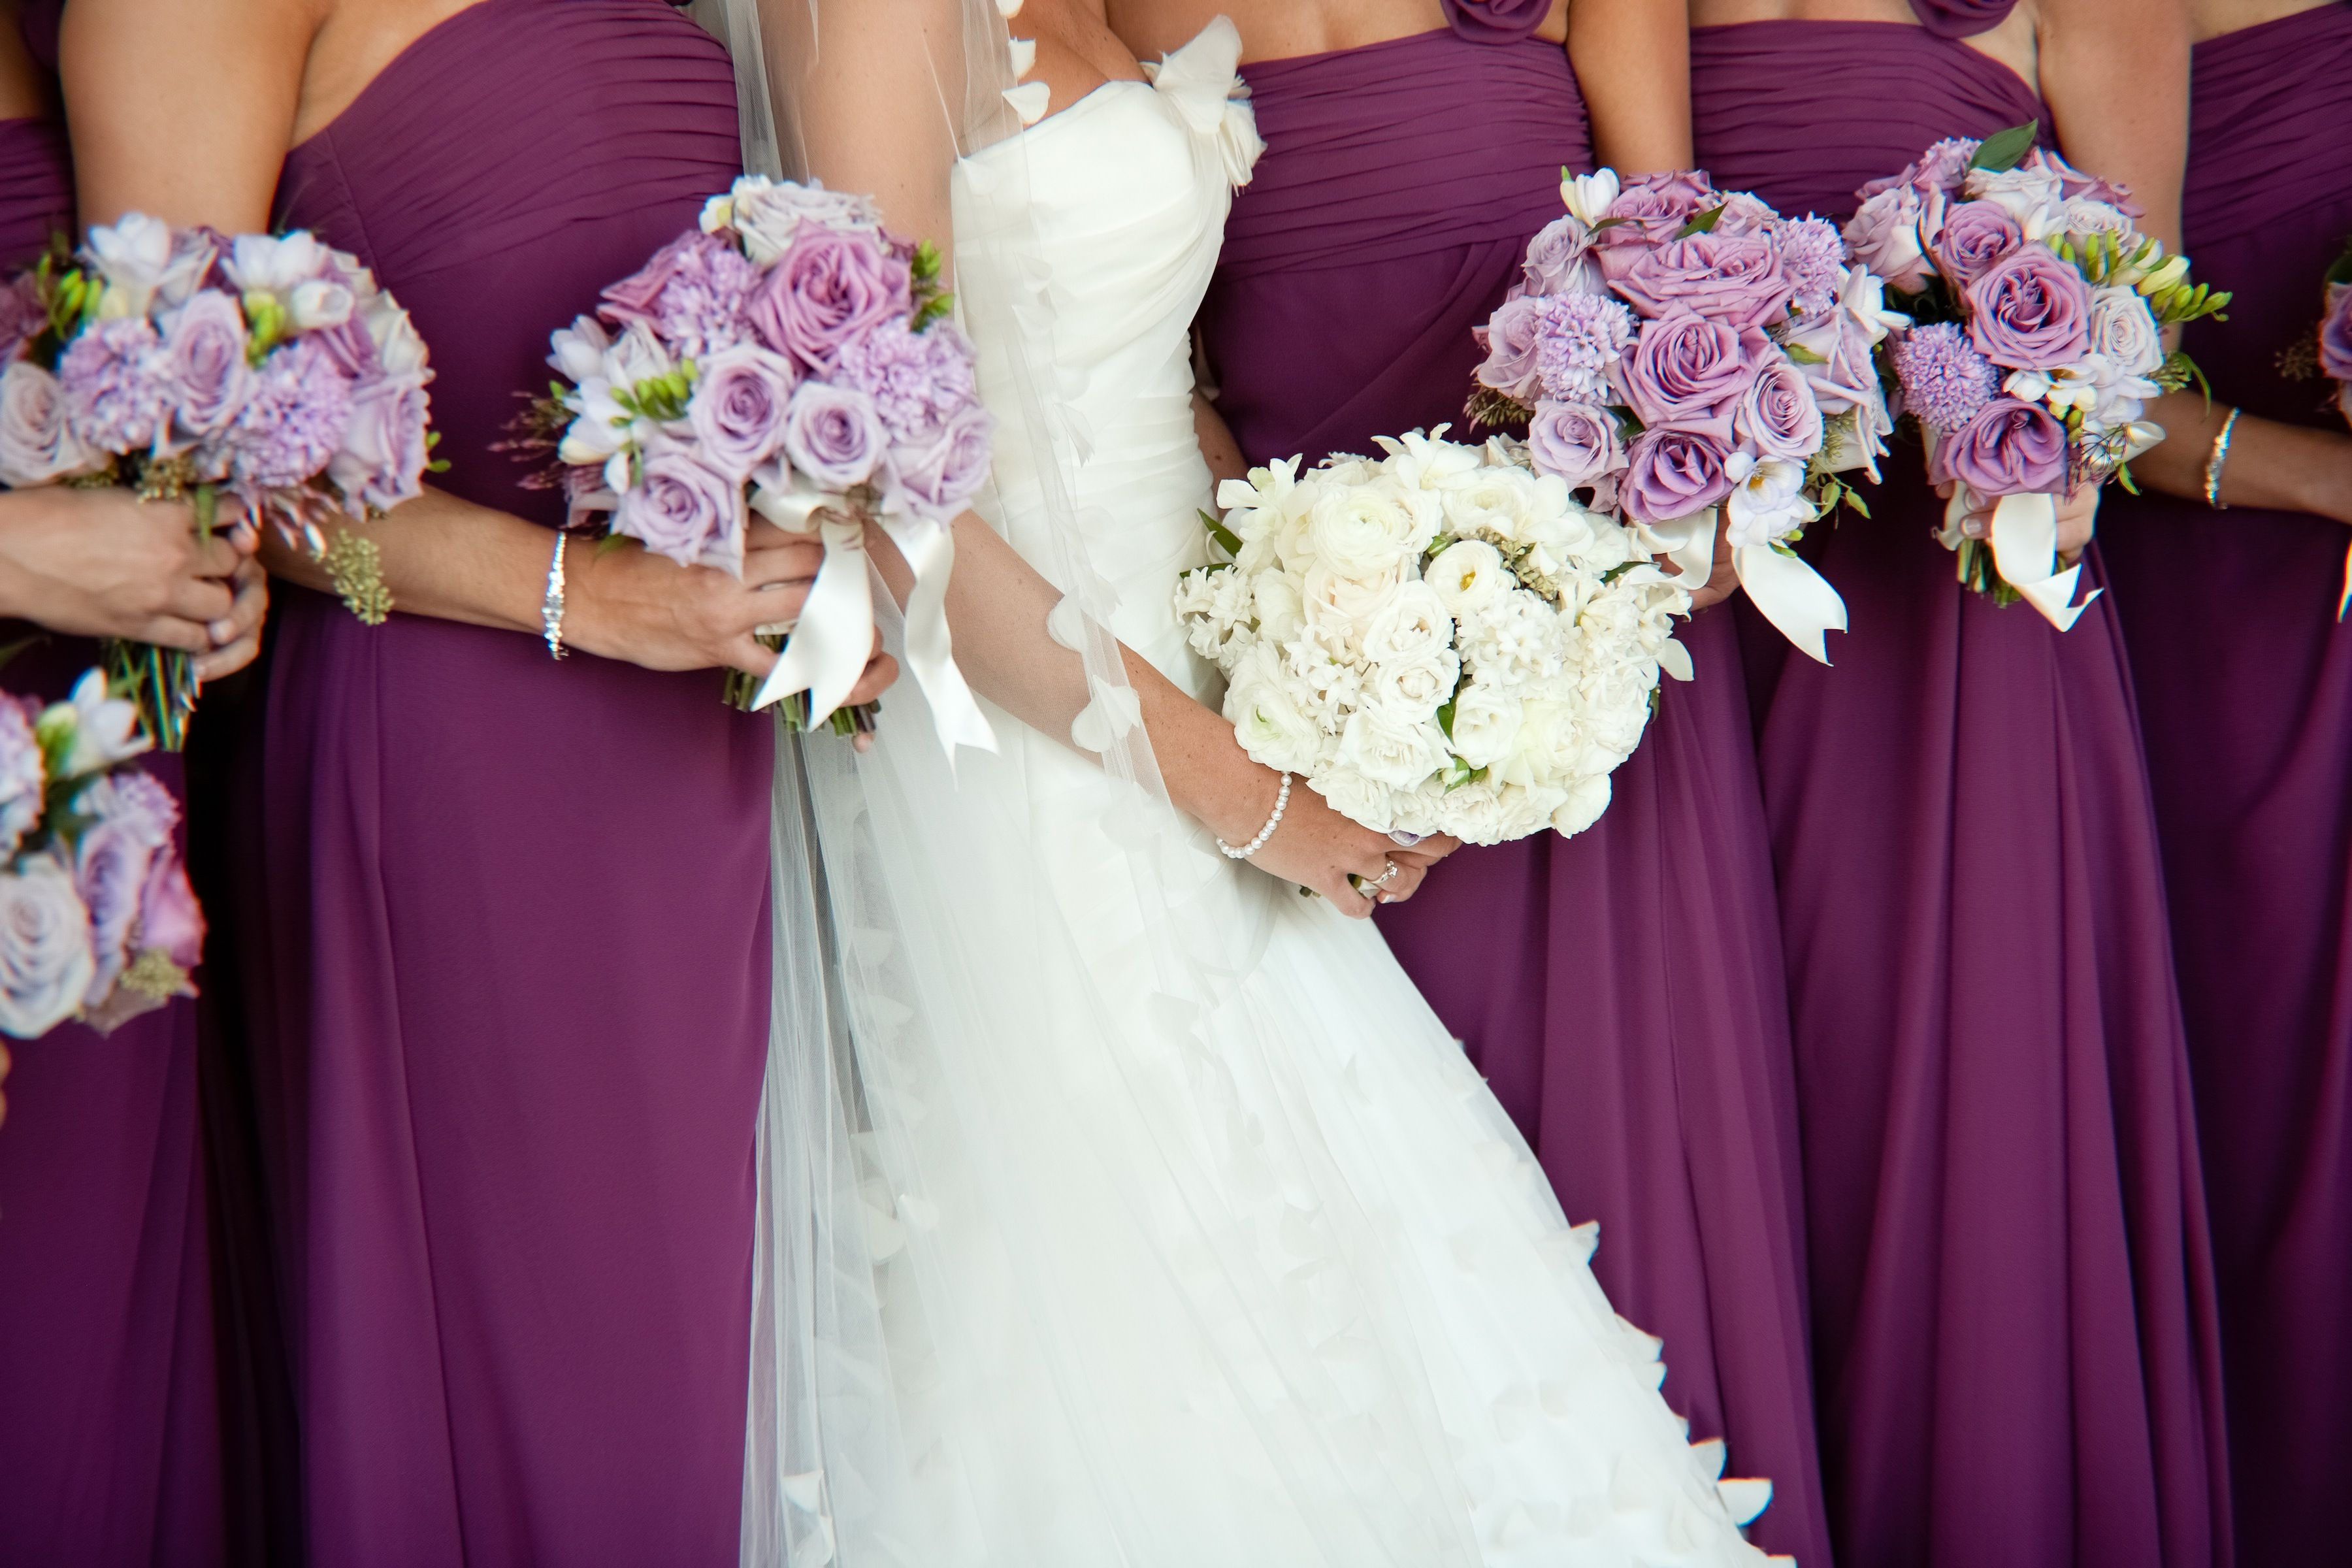 Purple Bridesmaids Dresses With Lavender And White Rose Bouquets Purple Bridesmaid Dresses Gold Wedding Flowers Purple And Gold Wedding [ 2400 x 3600 Pixel ]